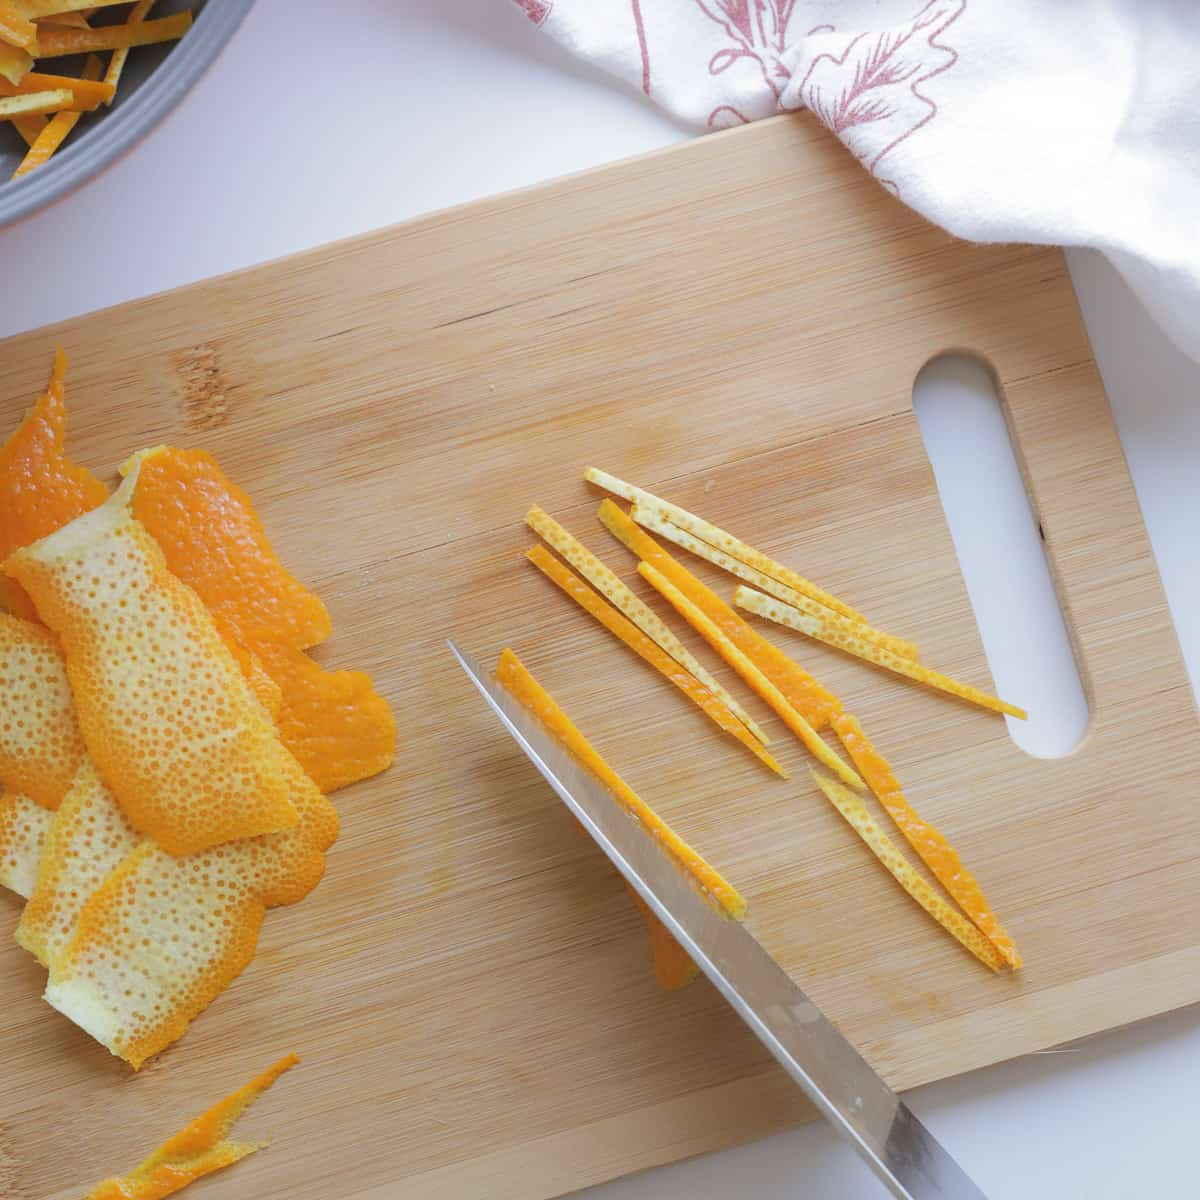 Orange peel being sliced into narrow pieces on a cutting board